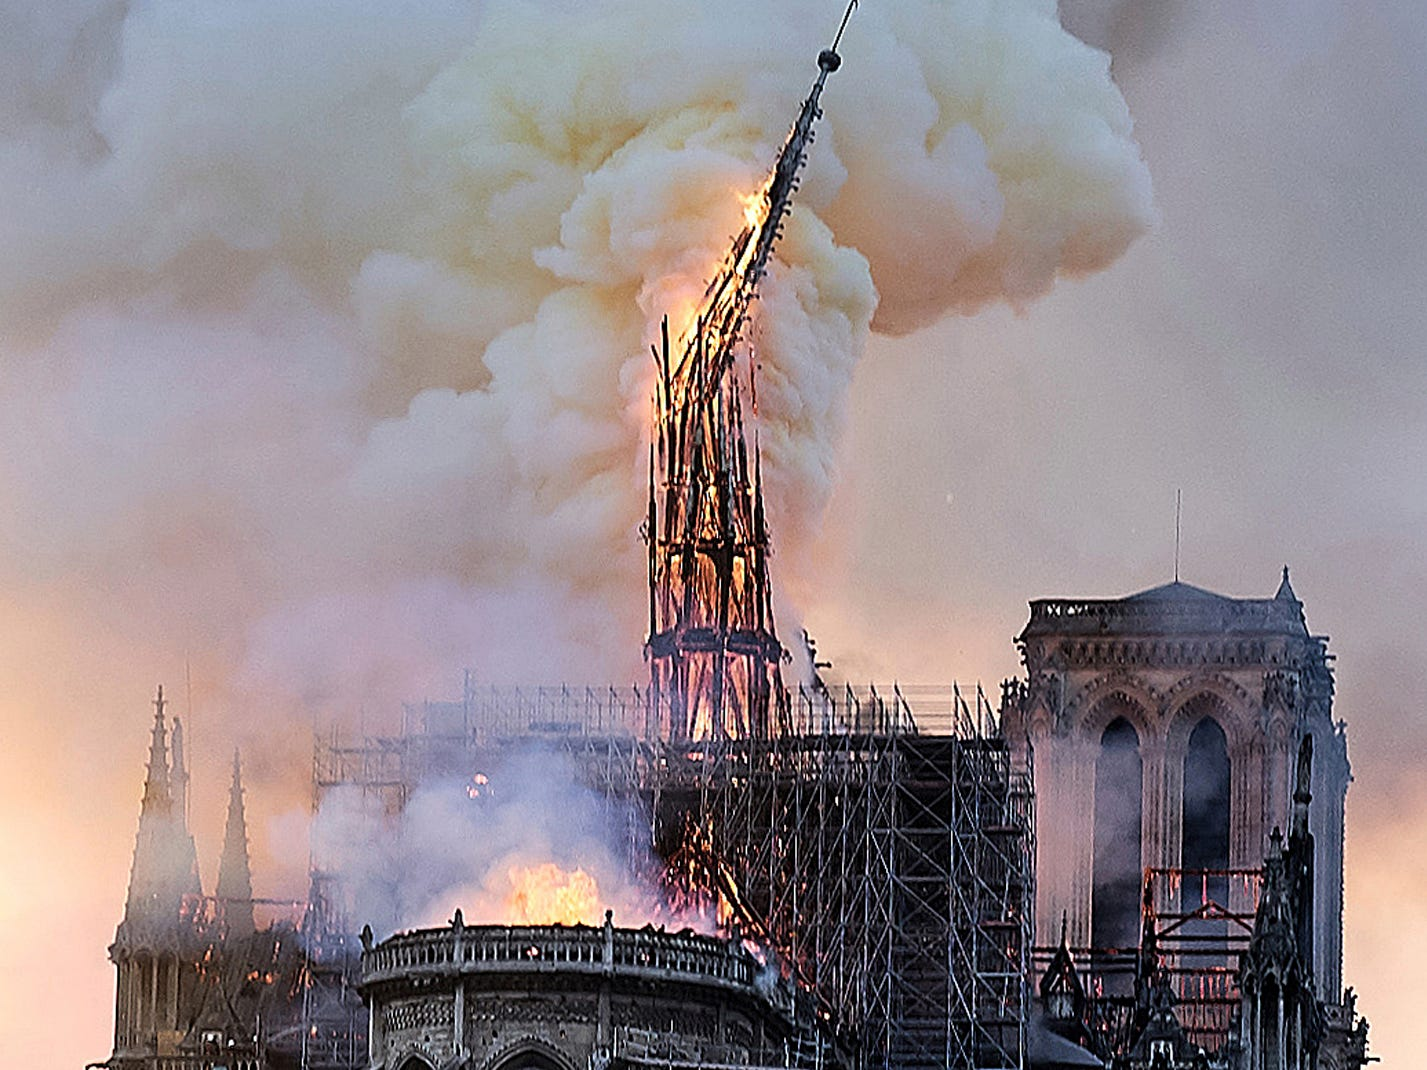 Flames and smoke rise as the spire on Notre Dame cathedral collapses in Paris, Monday, April 15, 2019. Massive plumes of yellow brown smoke is filling the air above Notre Dame Cathedral and ash is falling on tourists and others around the island that marks the center of Paris